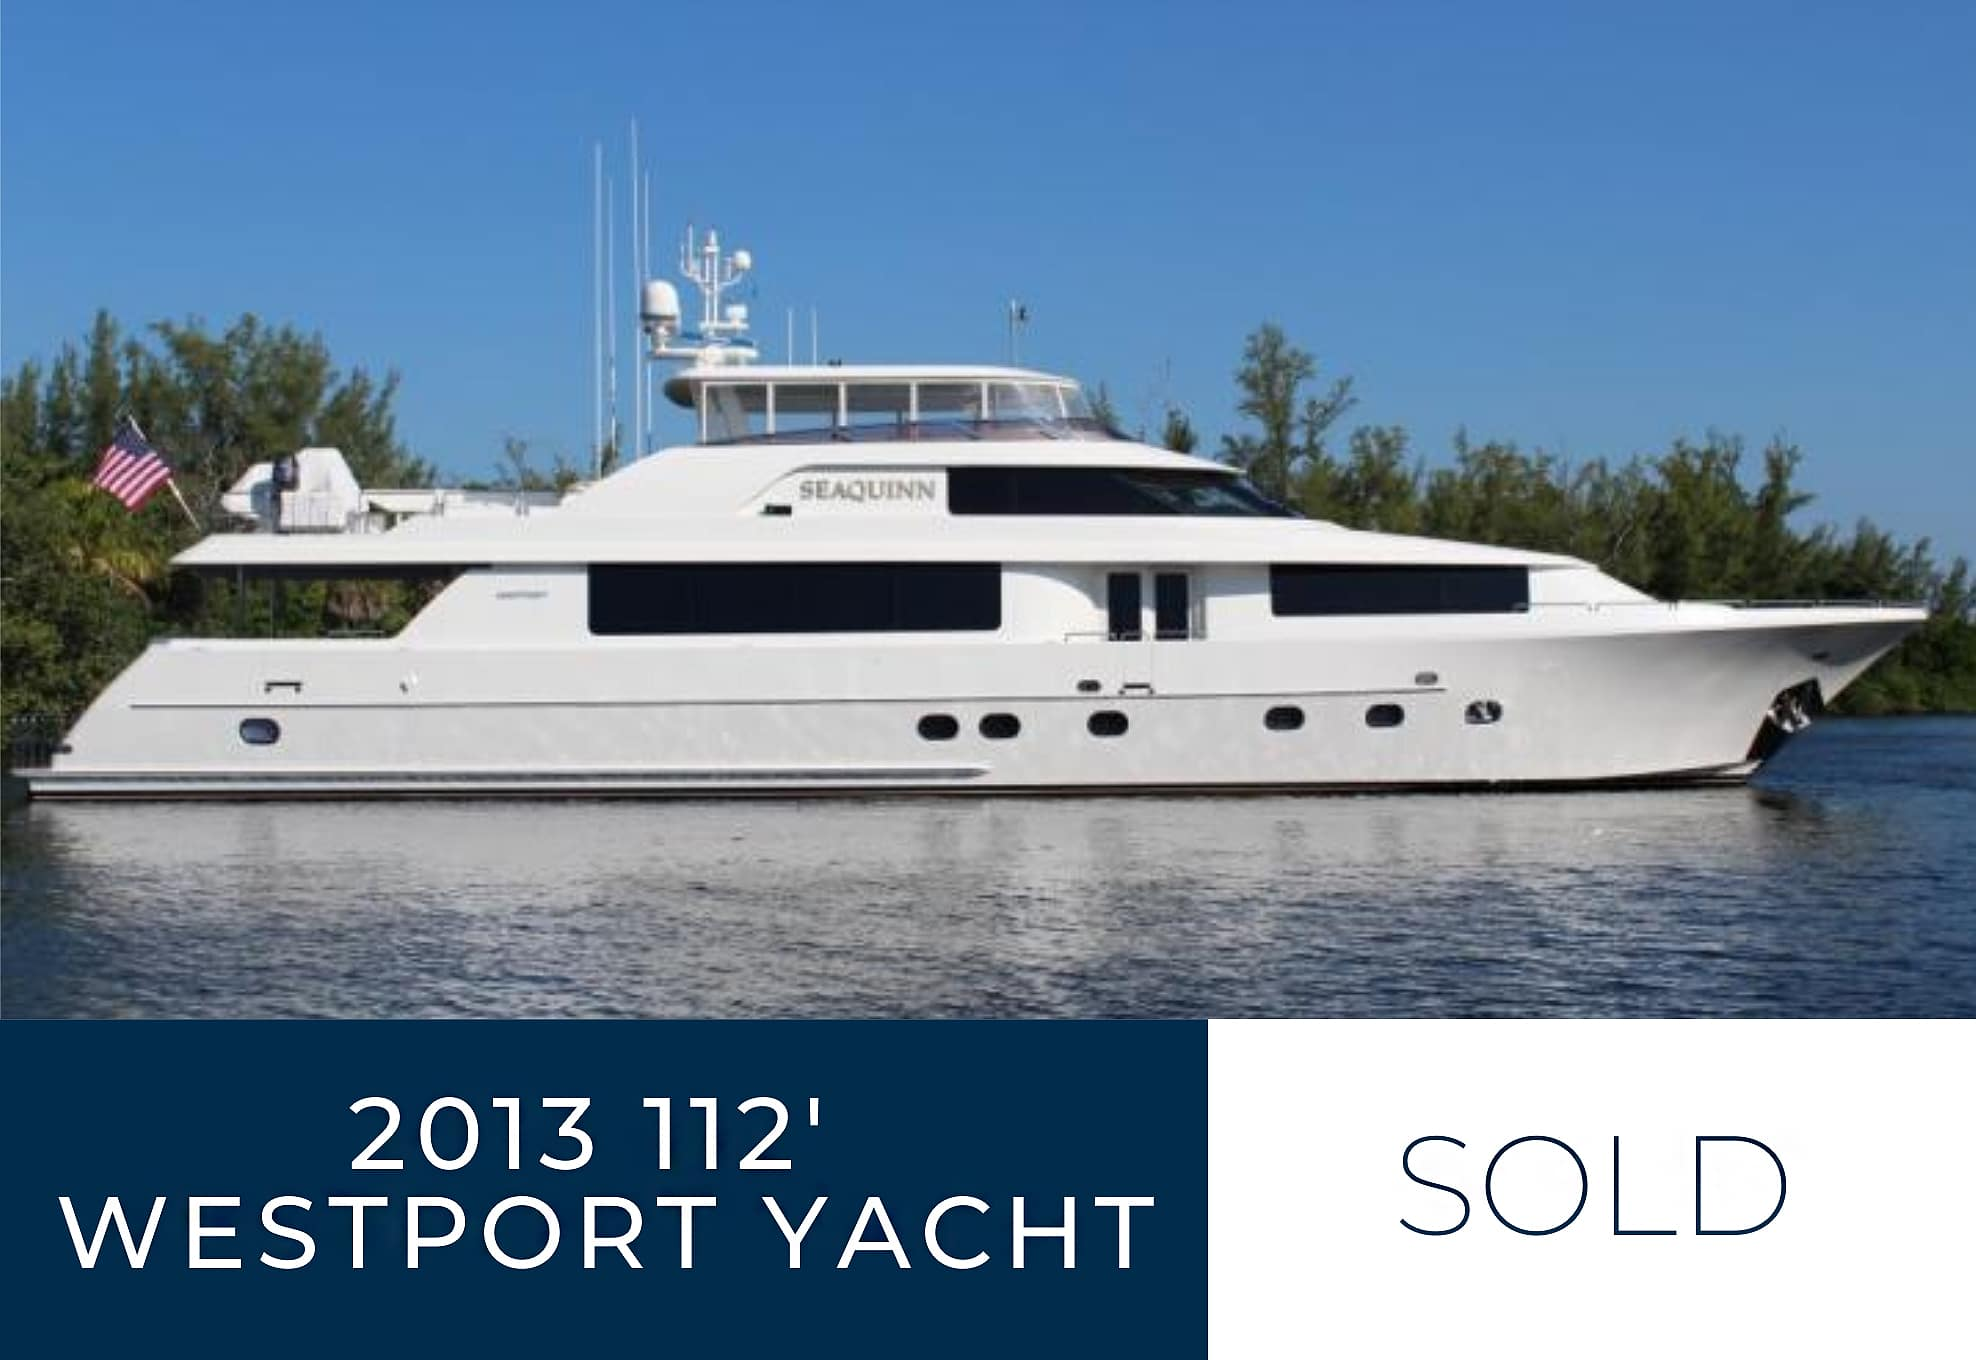 2013 112 Westport Yacht sold